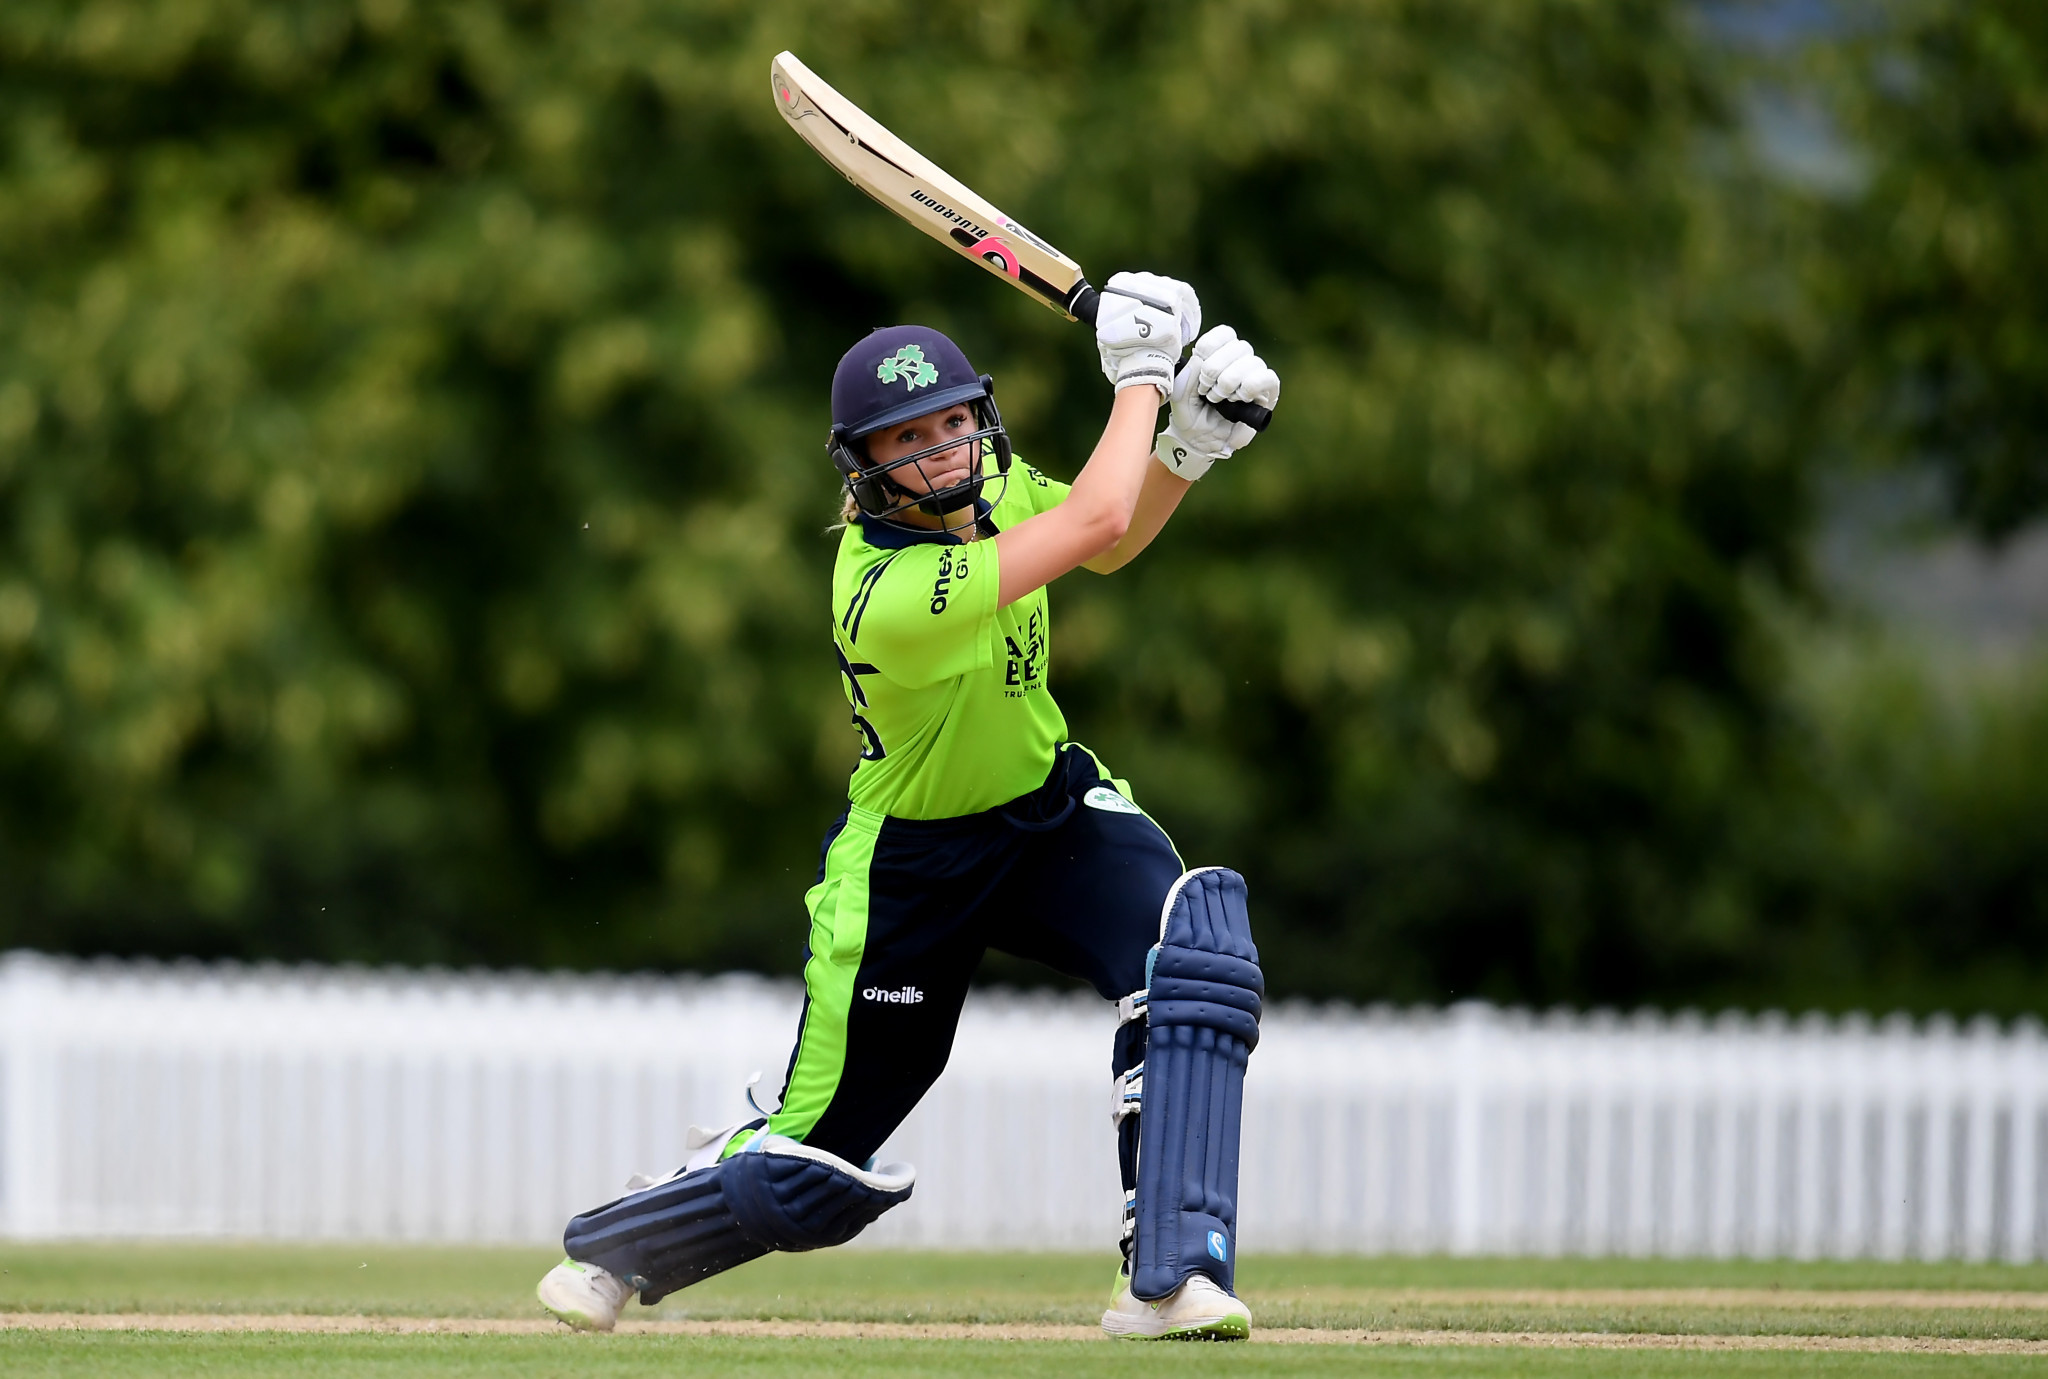 Ireland dominate Germany as Netherlands have middling results in ICC Women's T20 World Cup Qualifier